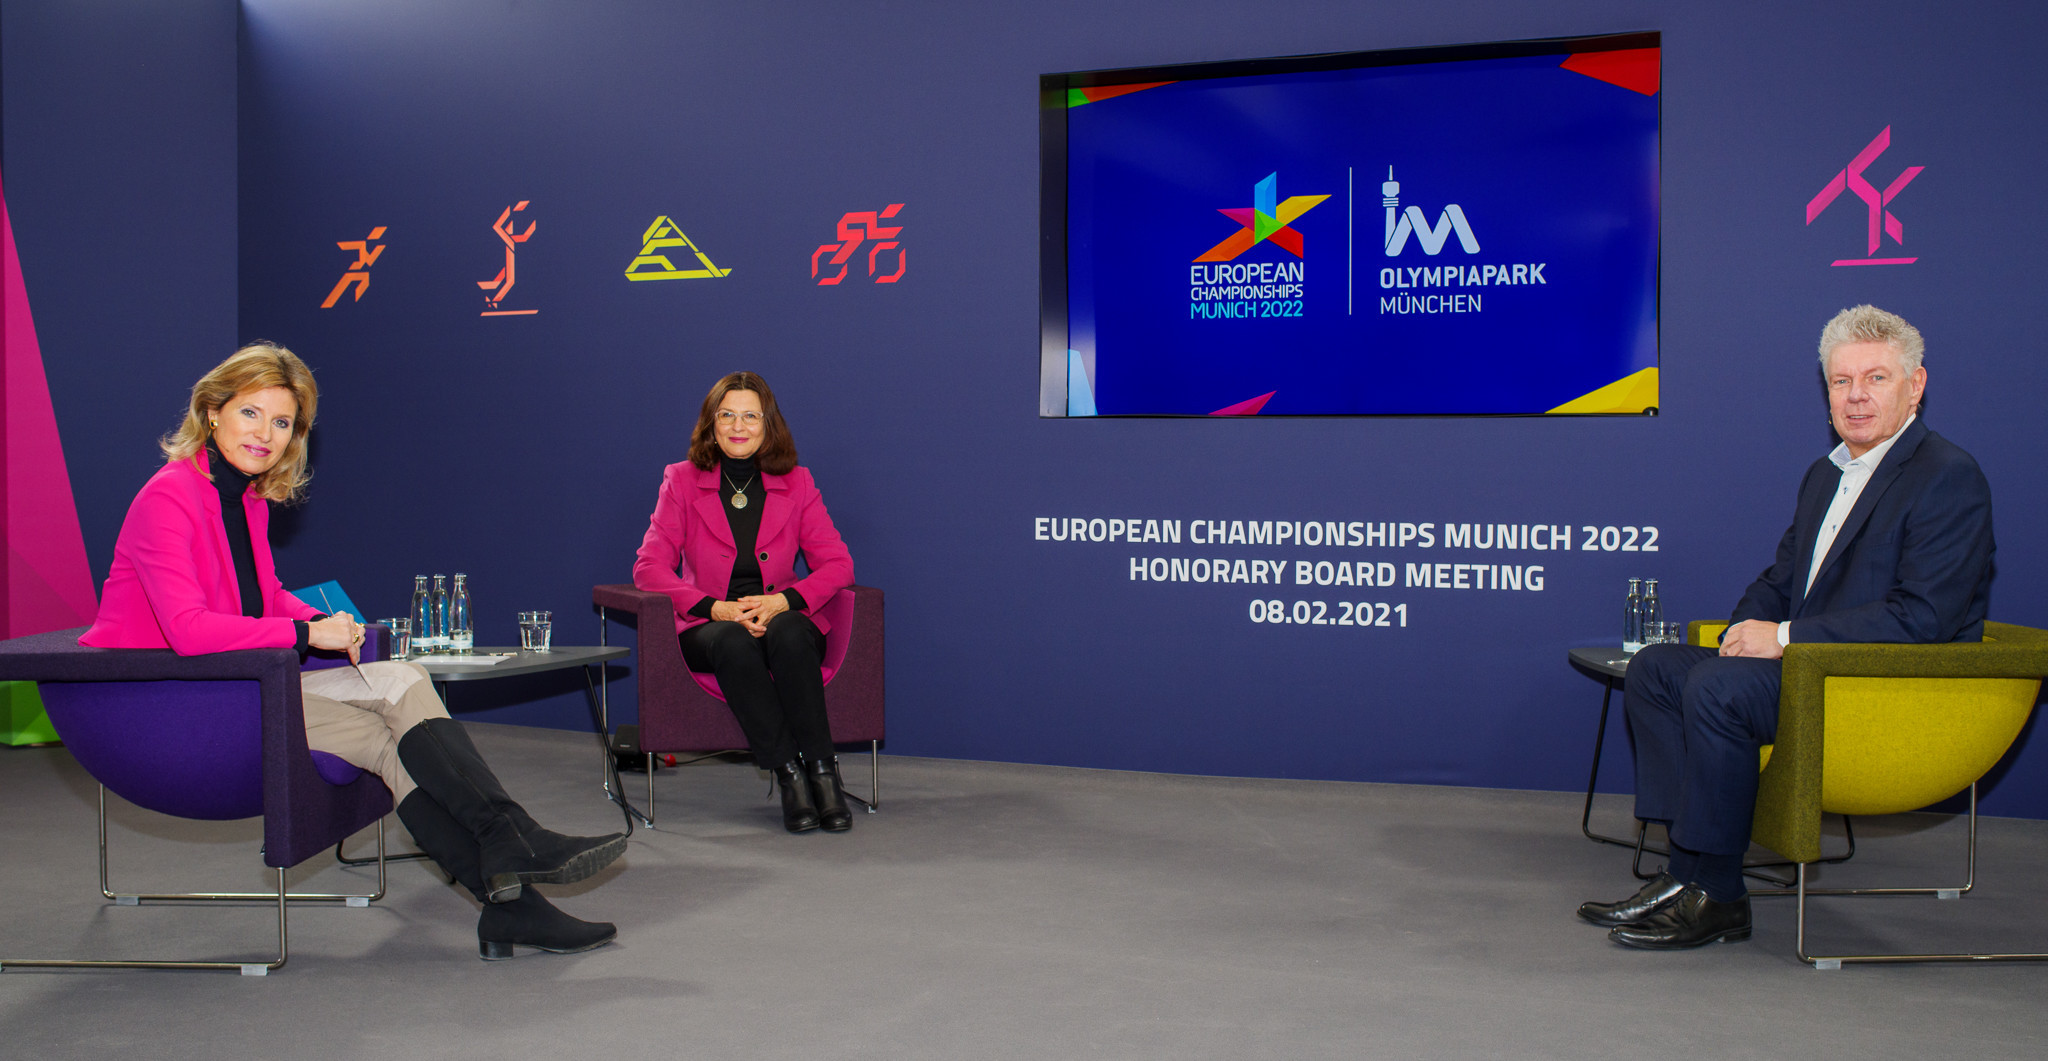 European Championships in 2022 to be highlight of Munich 1972 Golden Jubilee celebrations, promises Lord Mayor